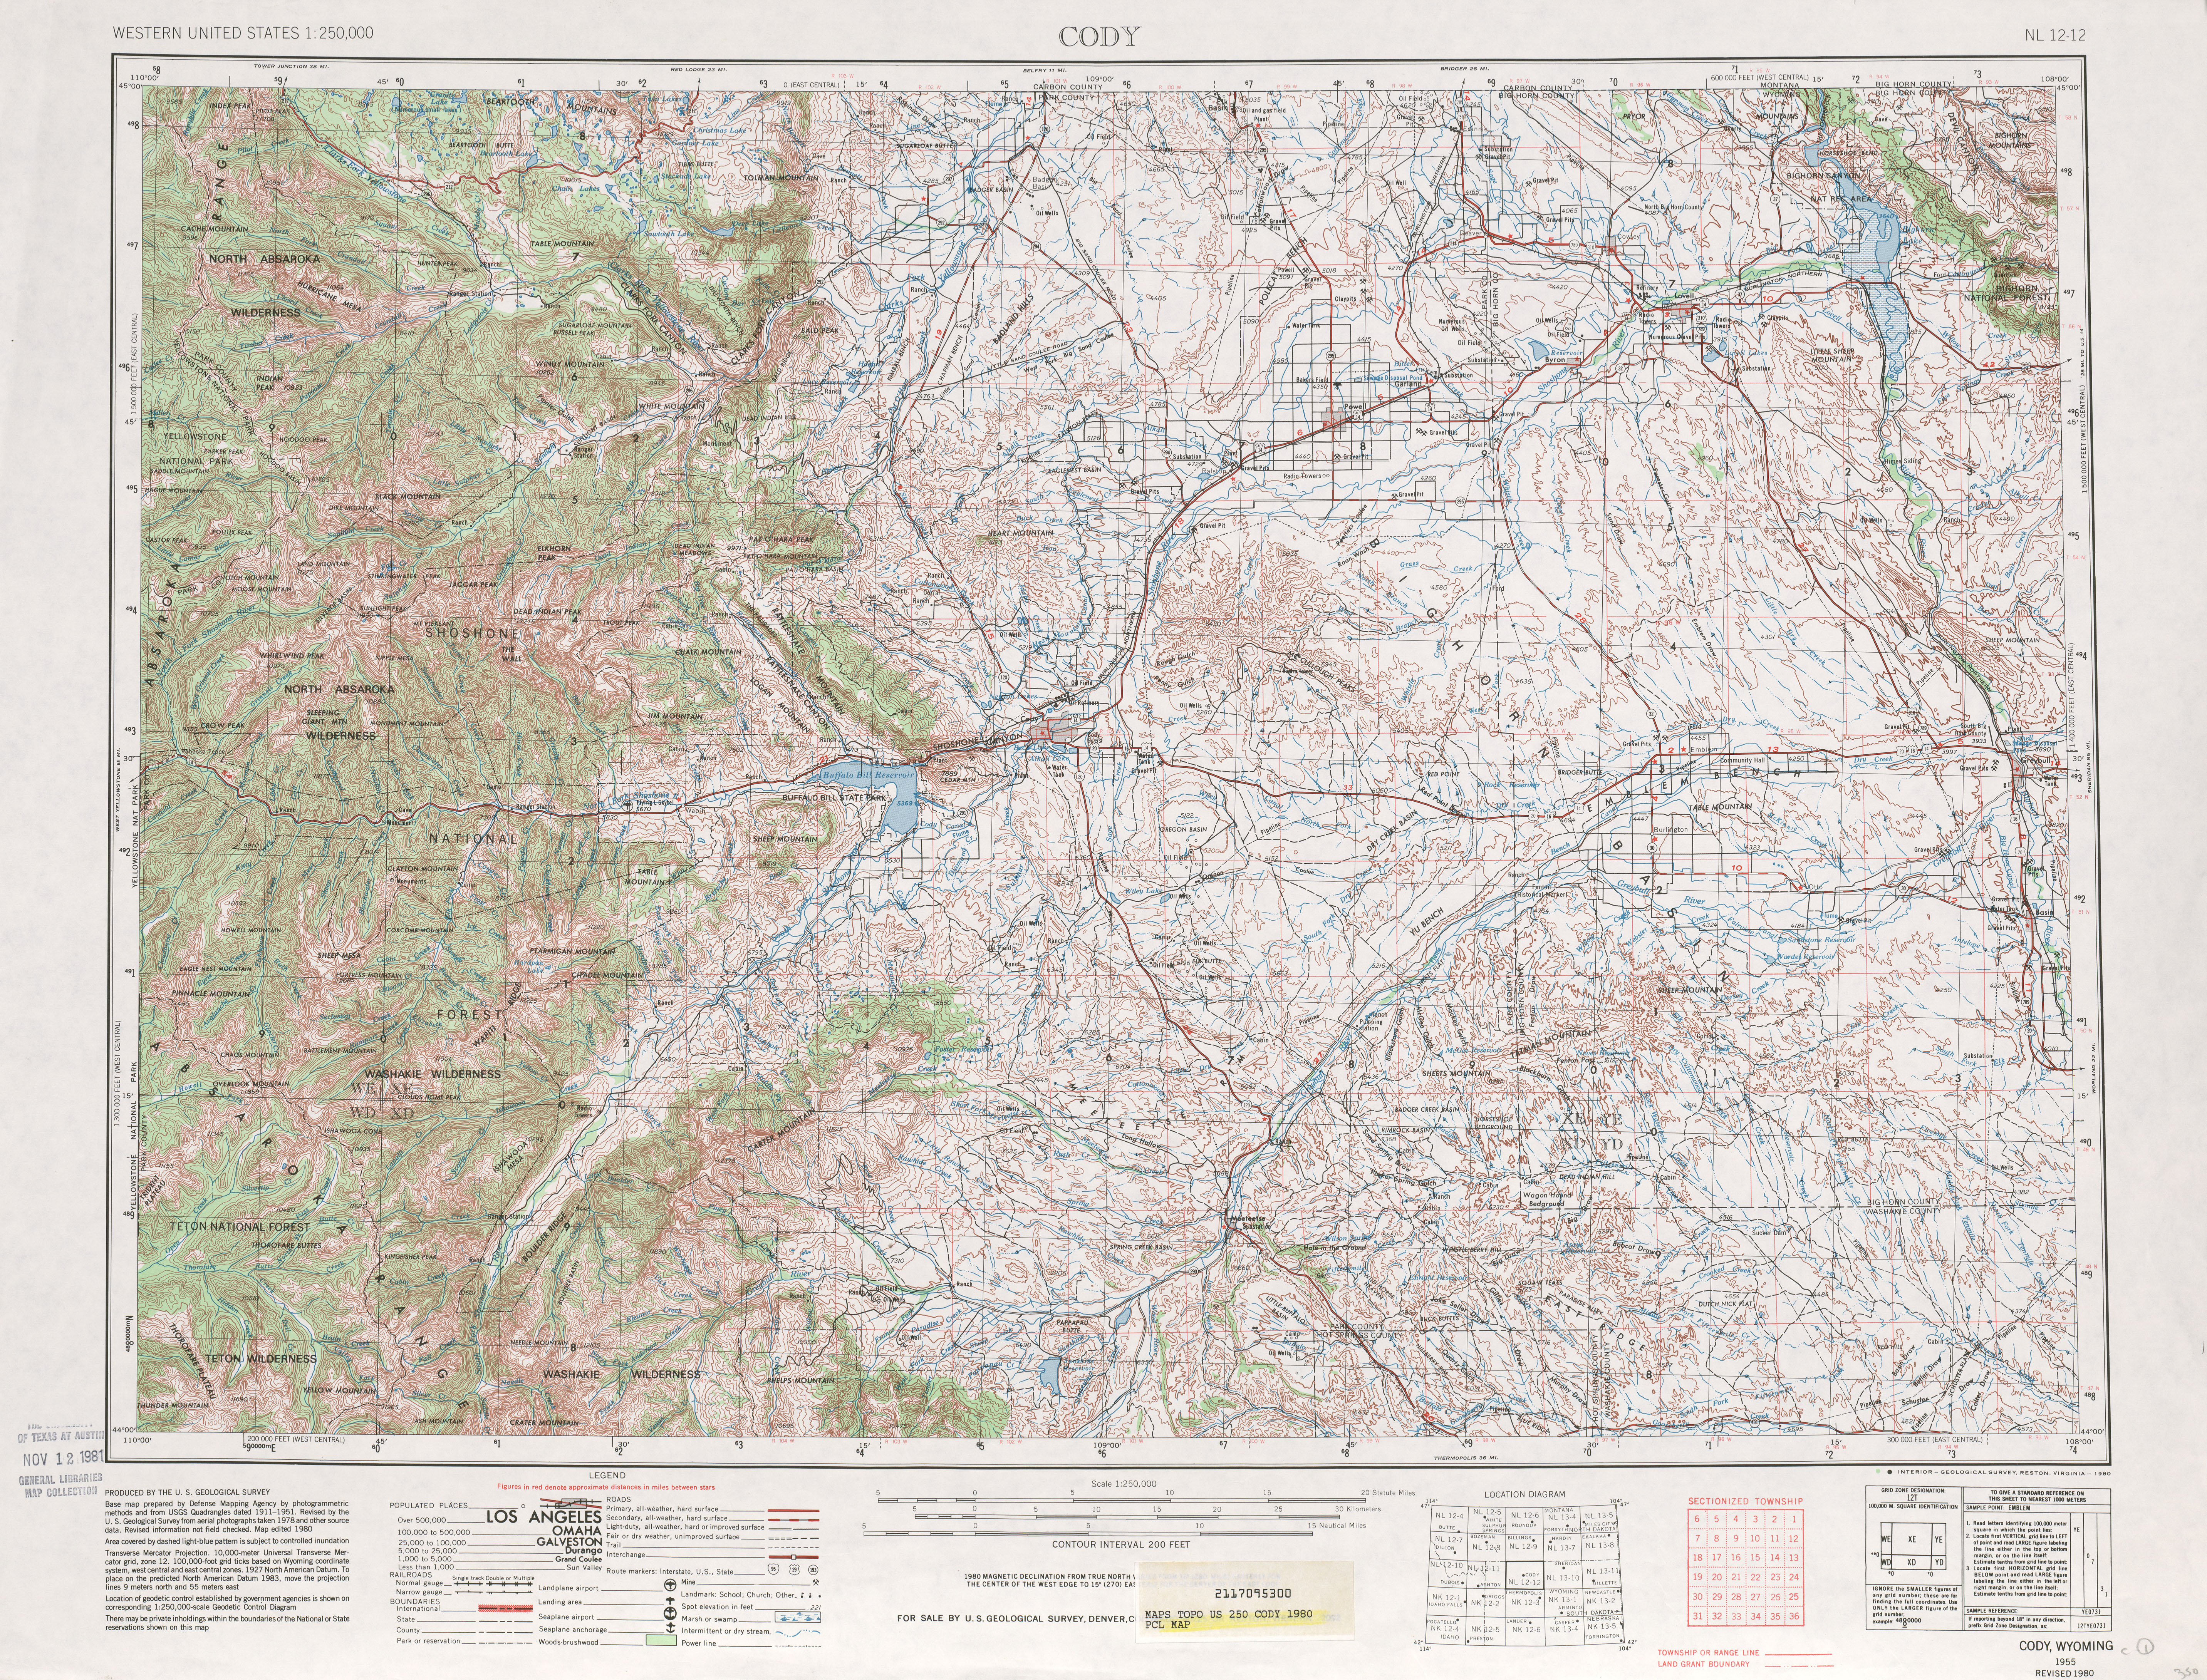 Cody Topographic Map Sheet, United States 1980